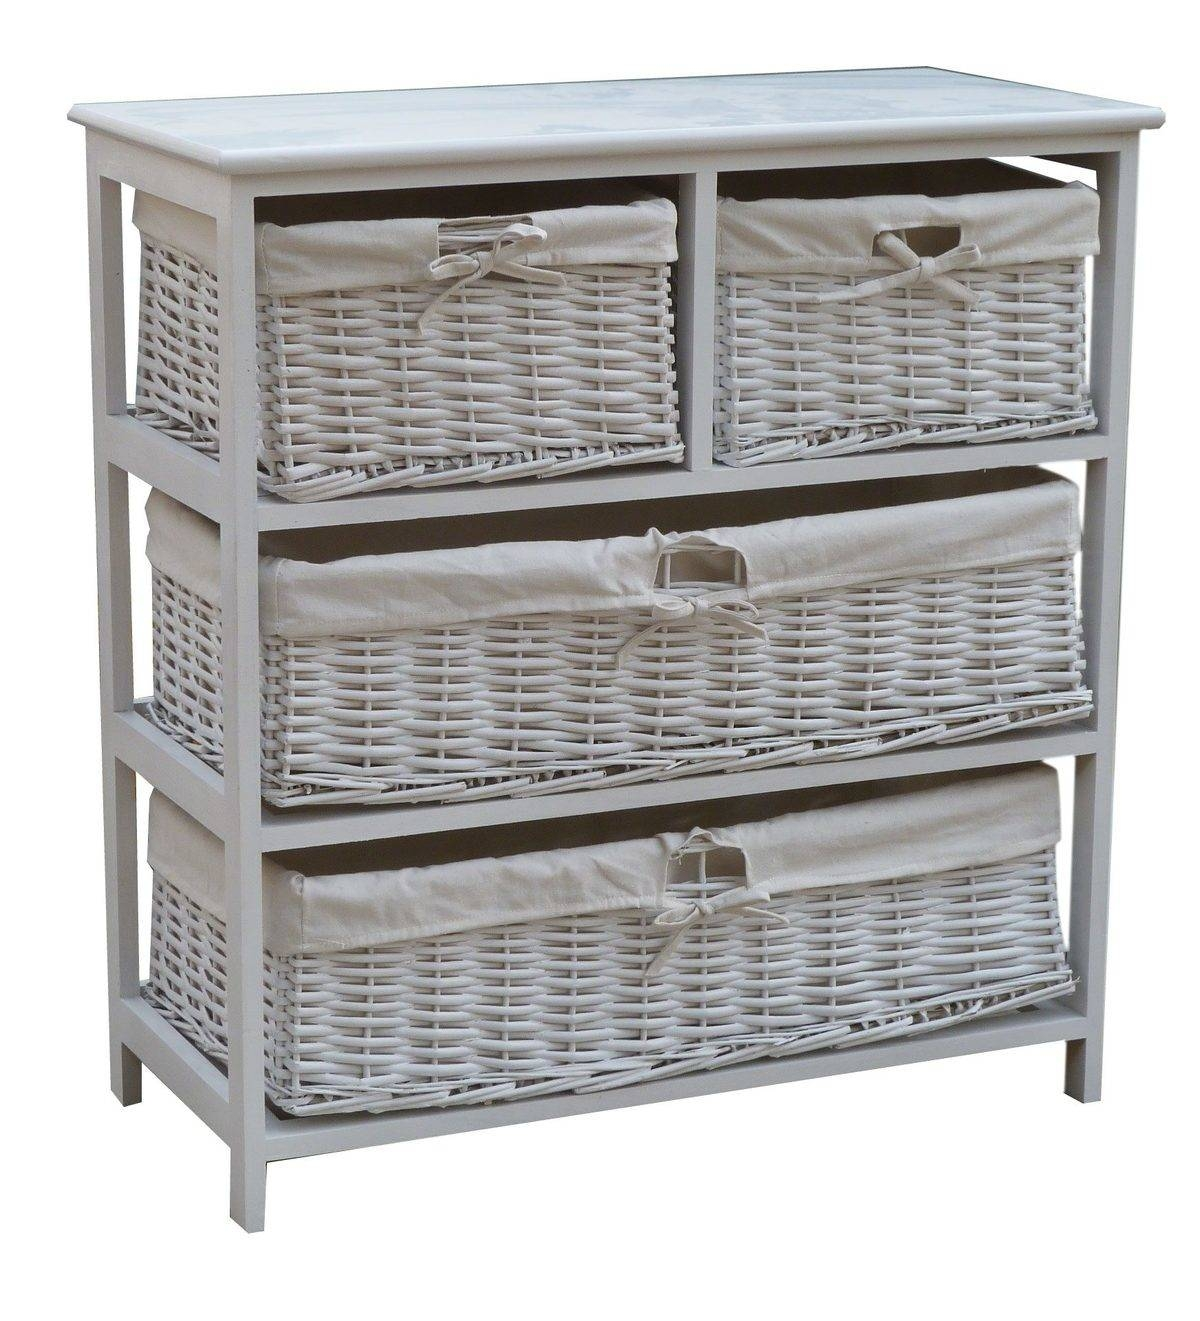 Permalink to Wood Storage Cabinet With Wicker Baskets